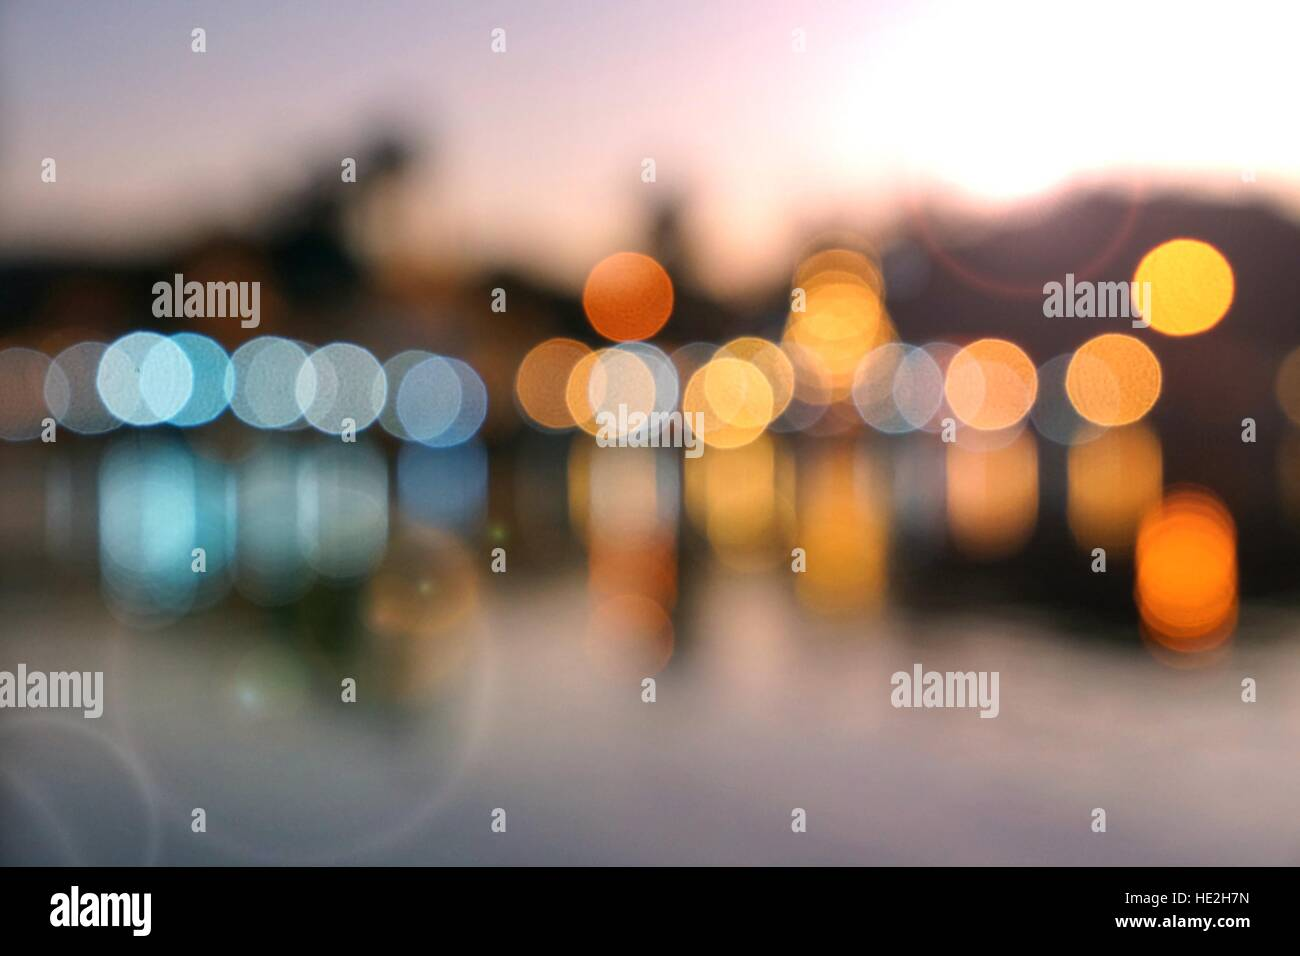 Abstract multicolor blurred bokeh light with water reflection and lens flare effect - Stock Image